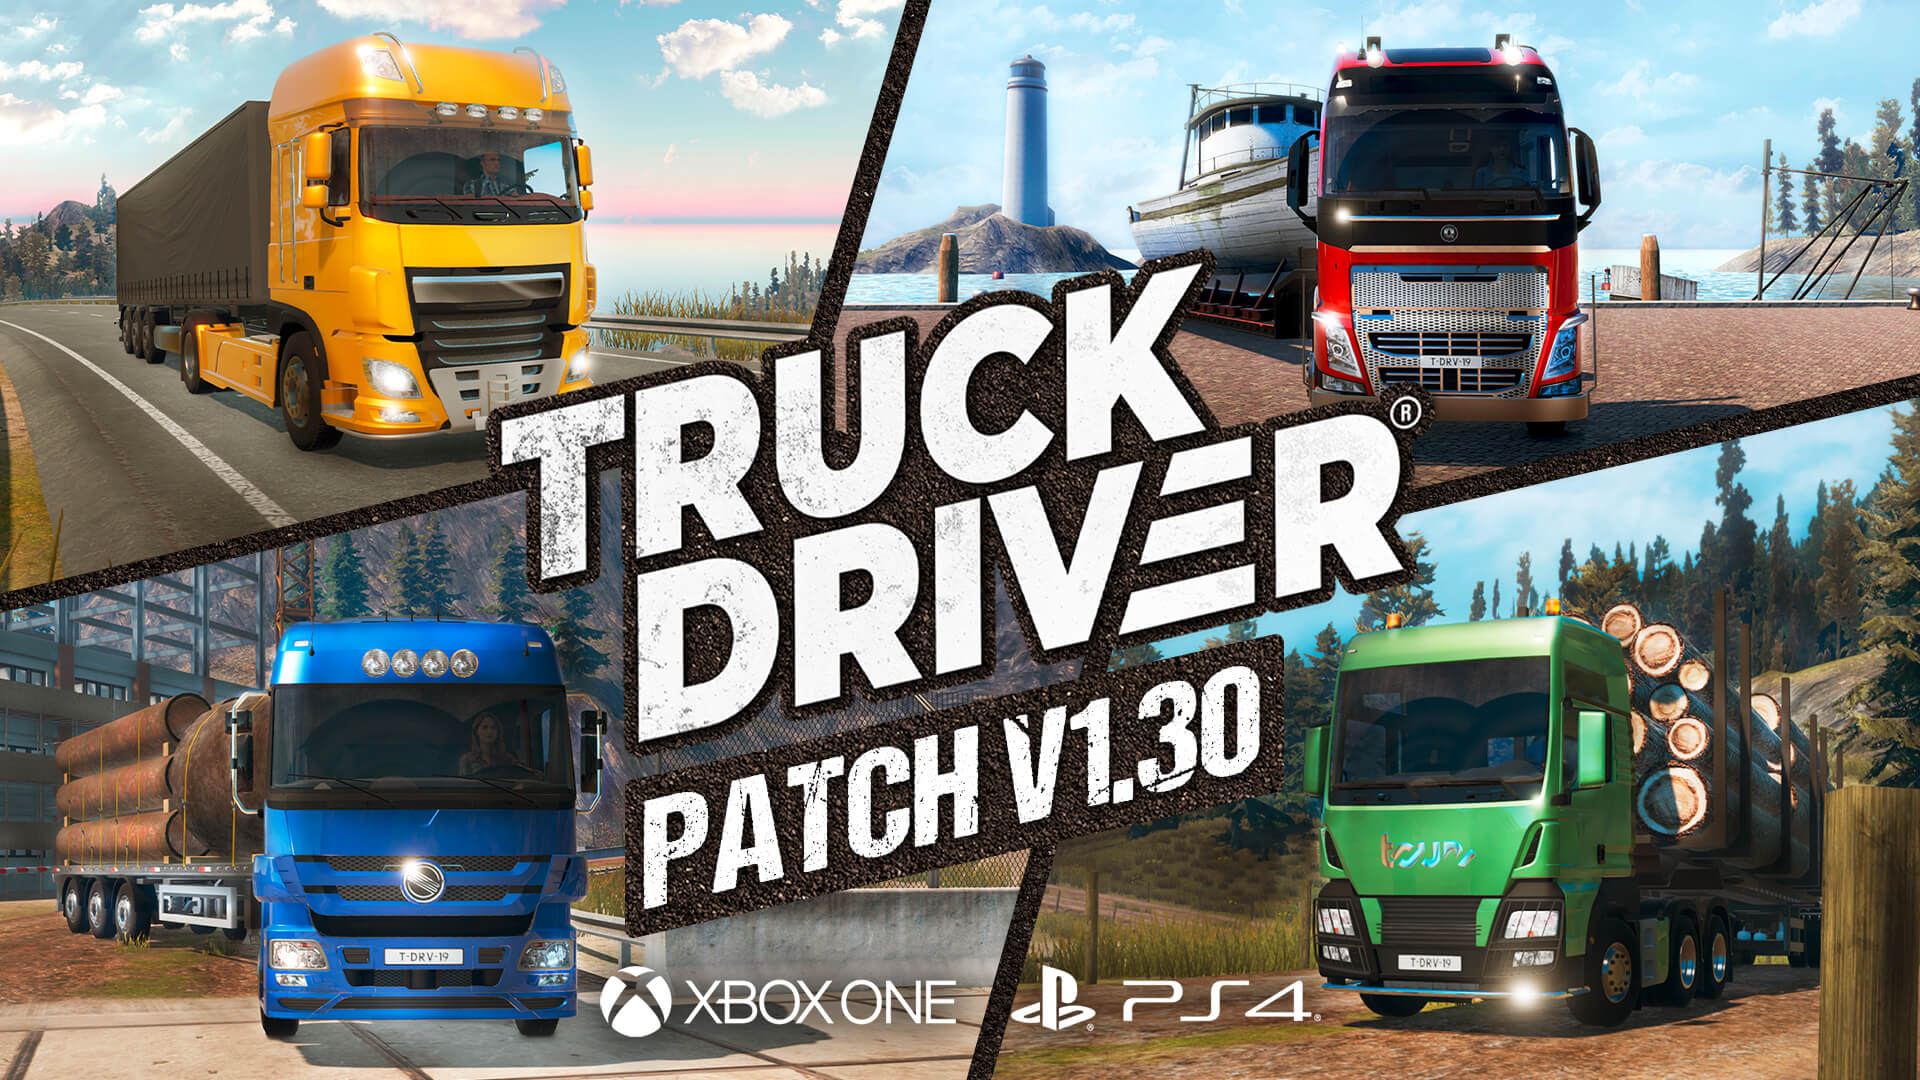 Truck Driver update v1.30 now live on PlayStation®4